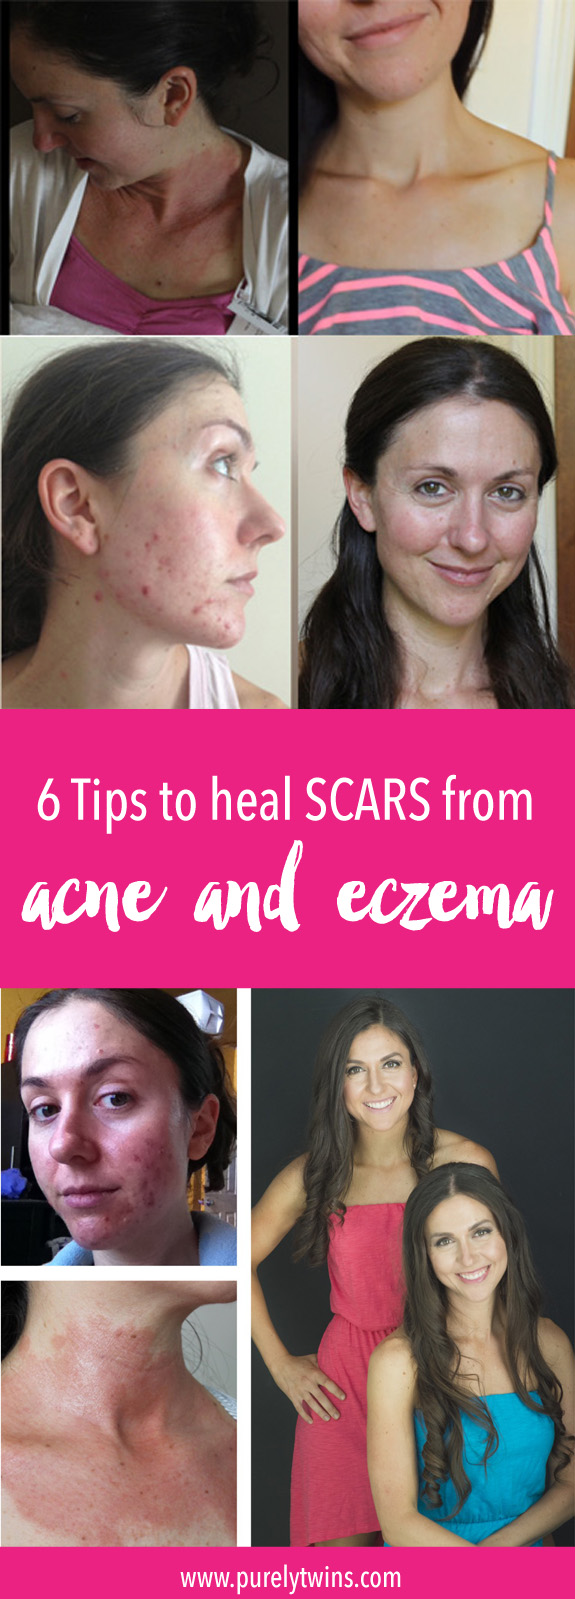 We understand how frustrating and embarrassing scars can be. We are sharing 6 tips that helped reduce the appearance of our scars from acne and eczema. Please share this with anyone you know suffering from scars and looking to get clear glowing skin.